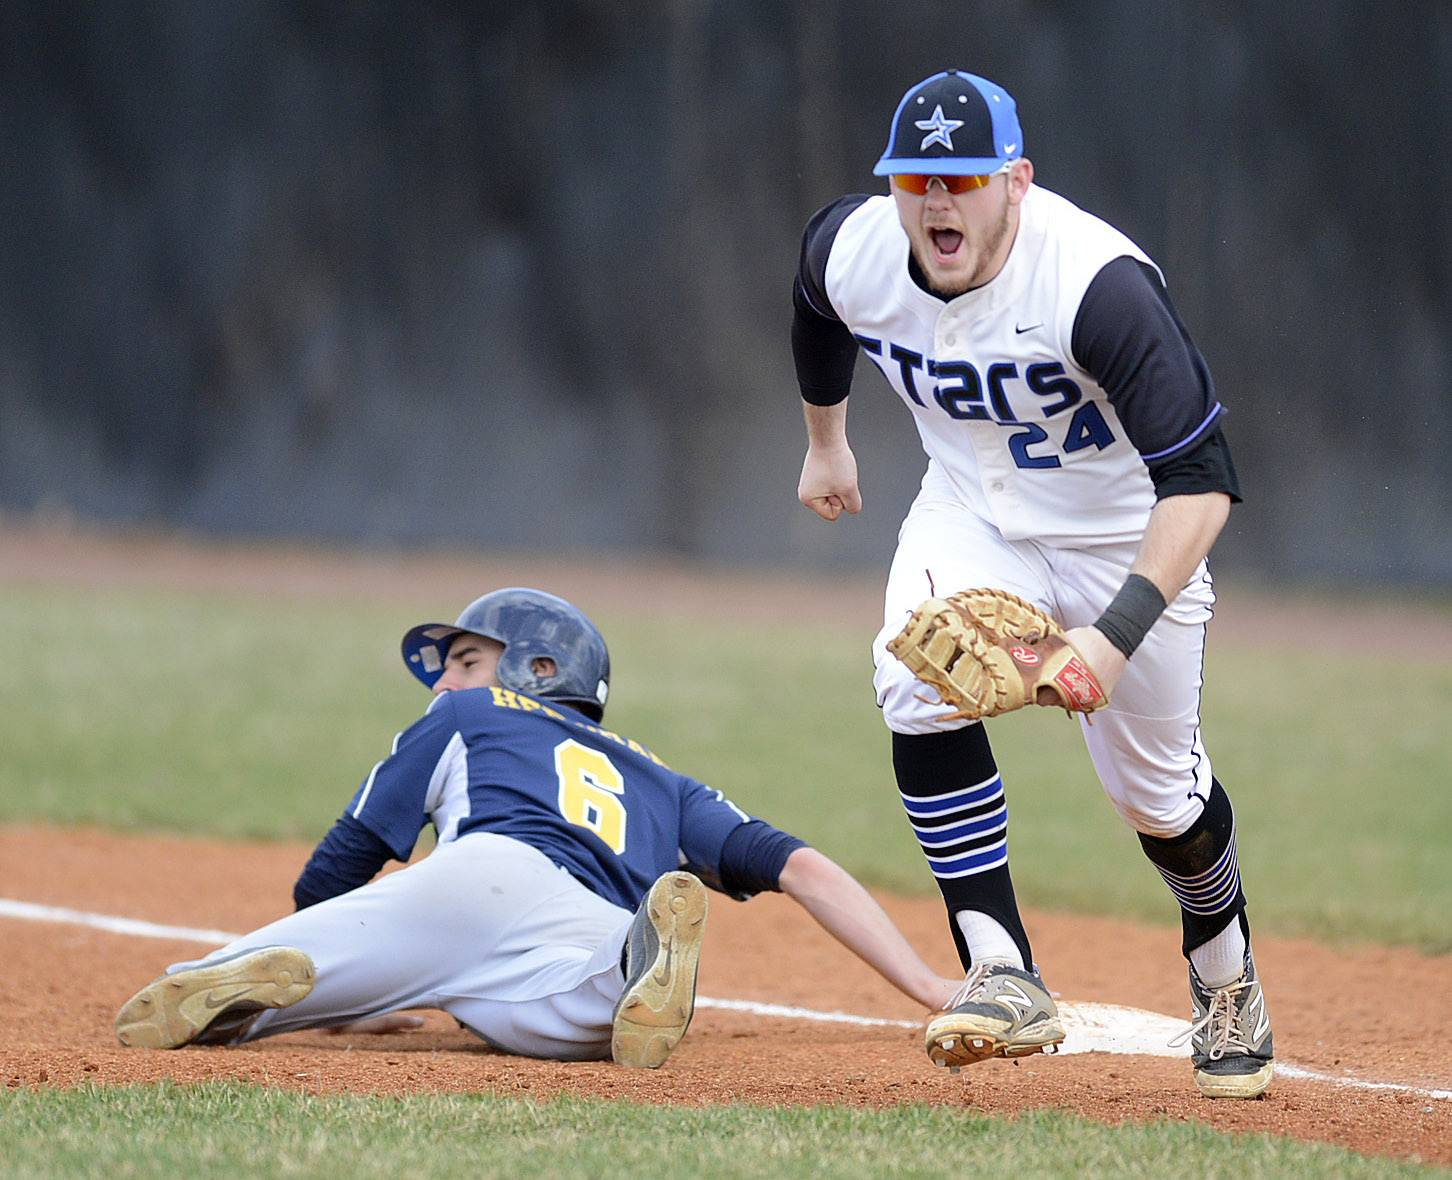 St. Charles North's Jack Dennis celebrates tagging out Neuqua Valley's Zach Herdman at first base for their third out in the second inning on Friday, April 11.